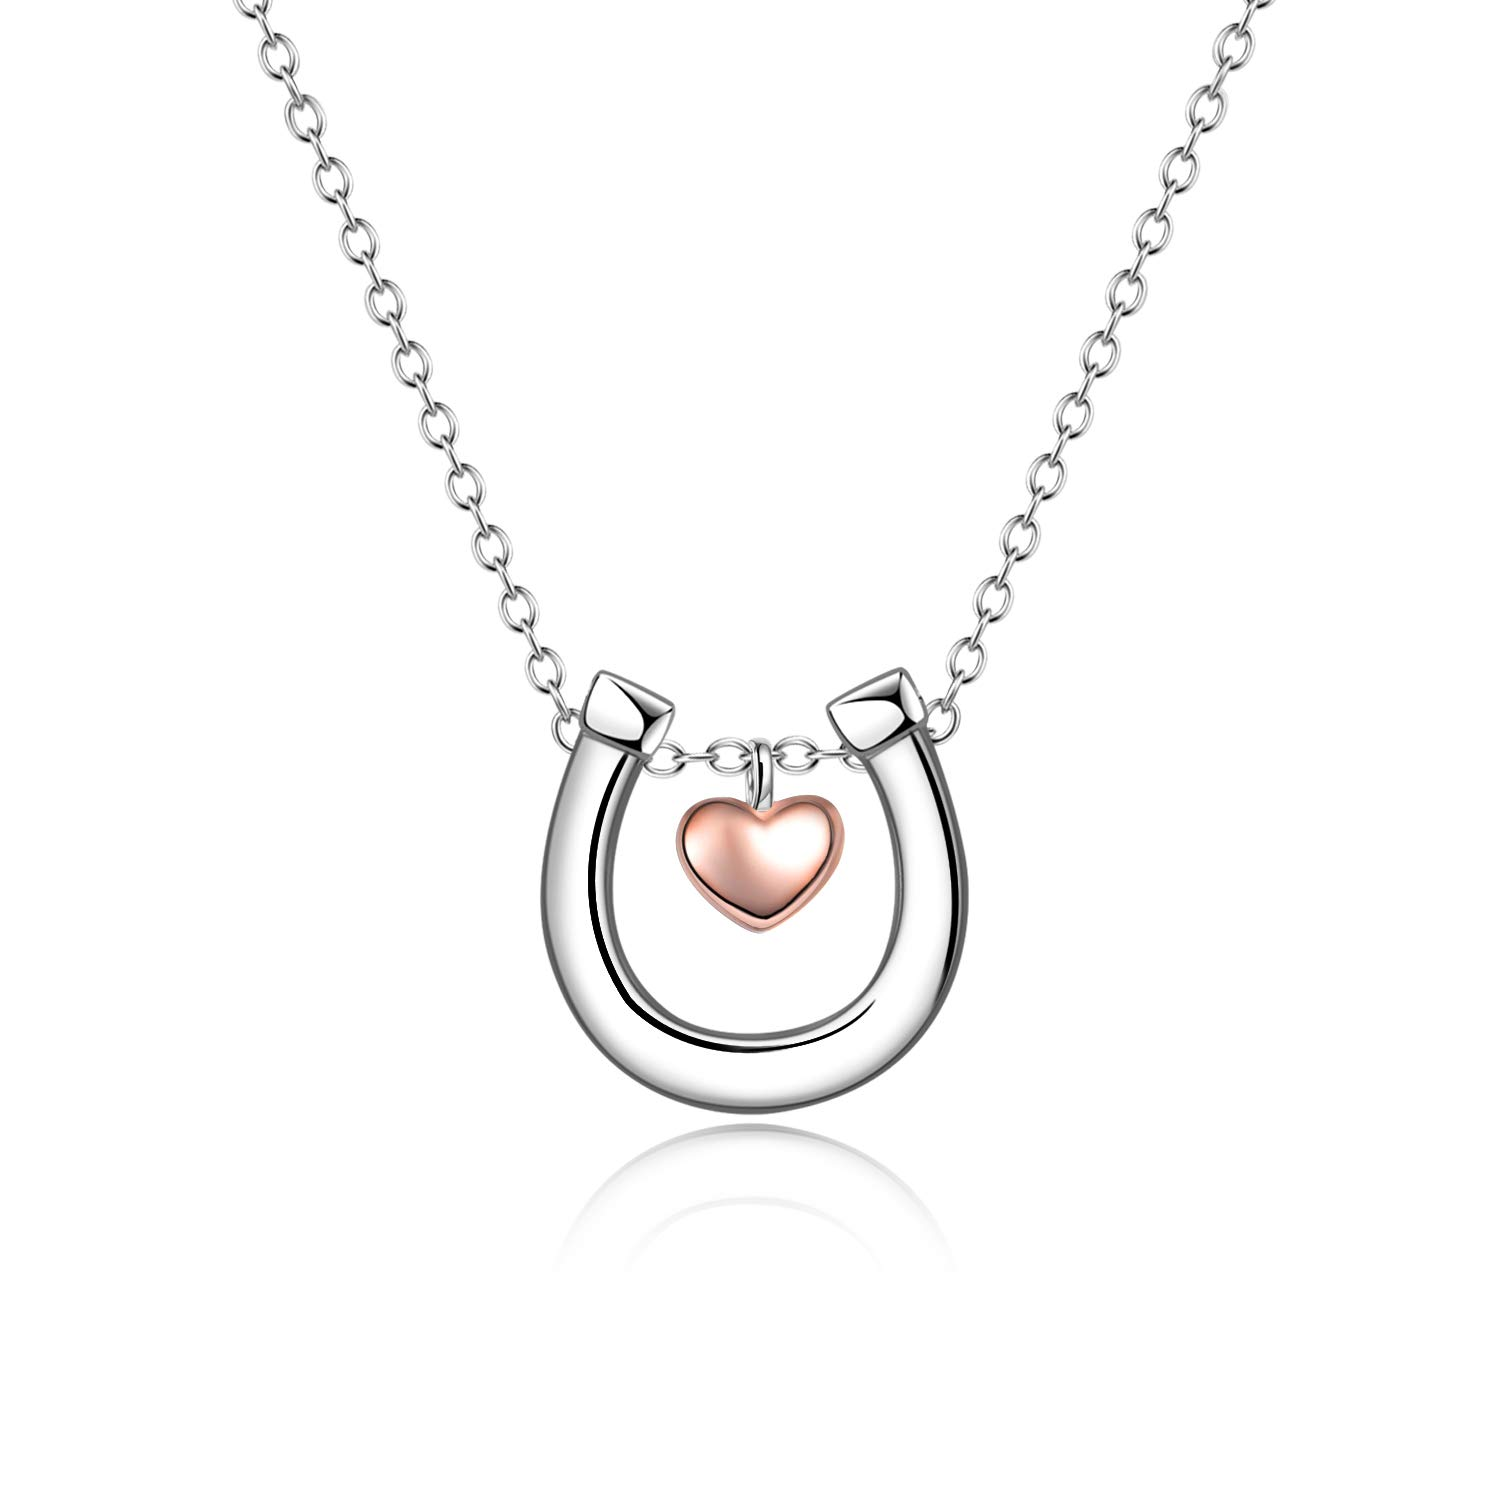 Sterling Silver Lucky Horseshoe Necklace Love Heart Pendant Horse Necklace Jewelry Gifts for Women Ladies 18'' (horseshoe necklace 18'') by POPLYKE